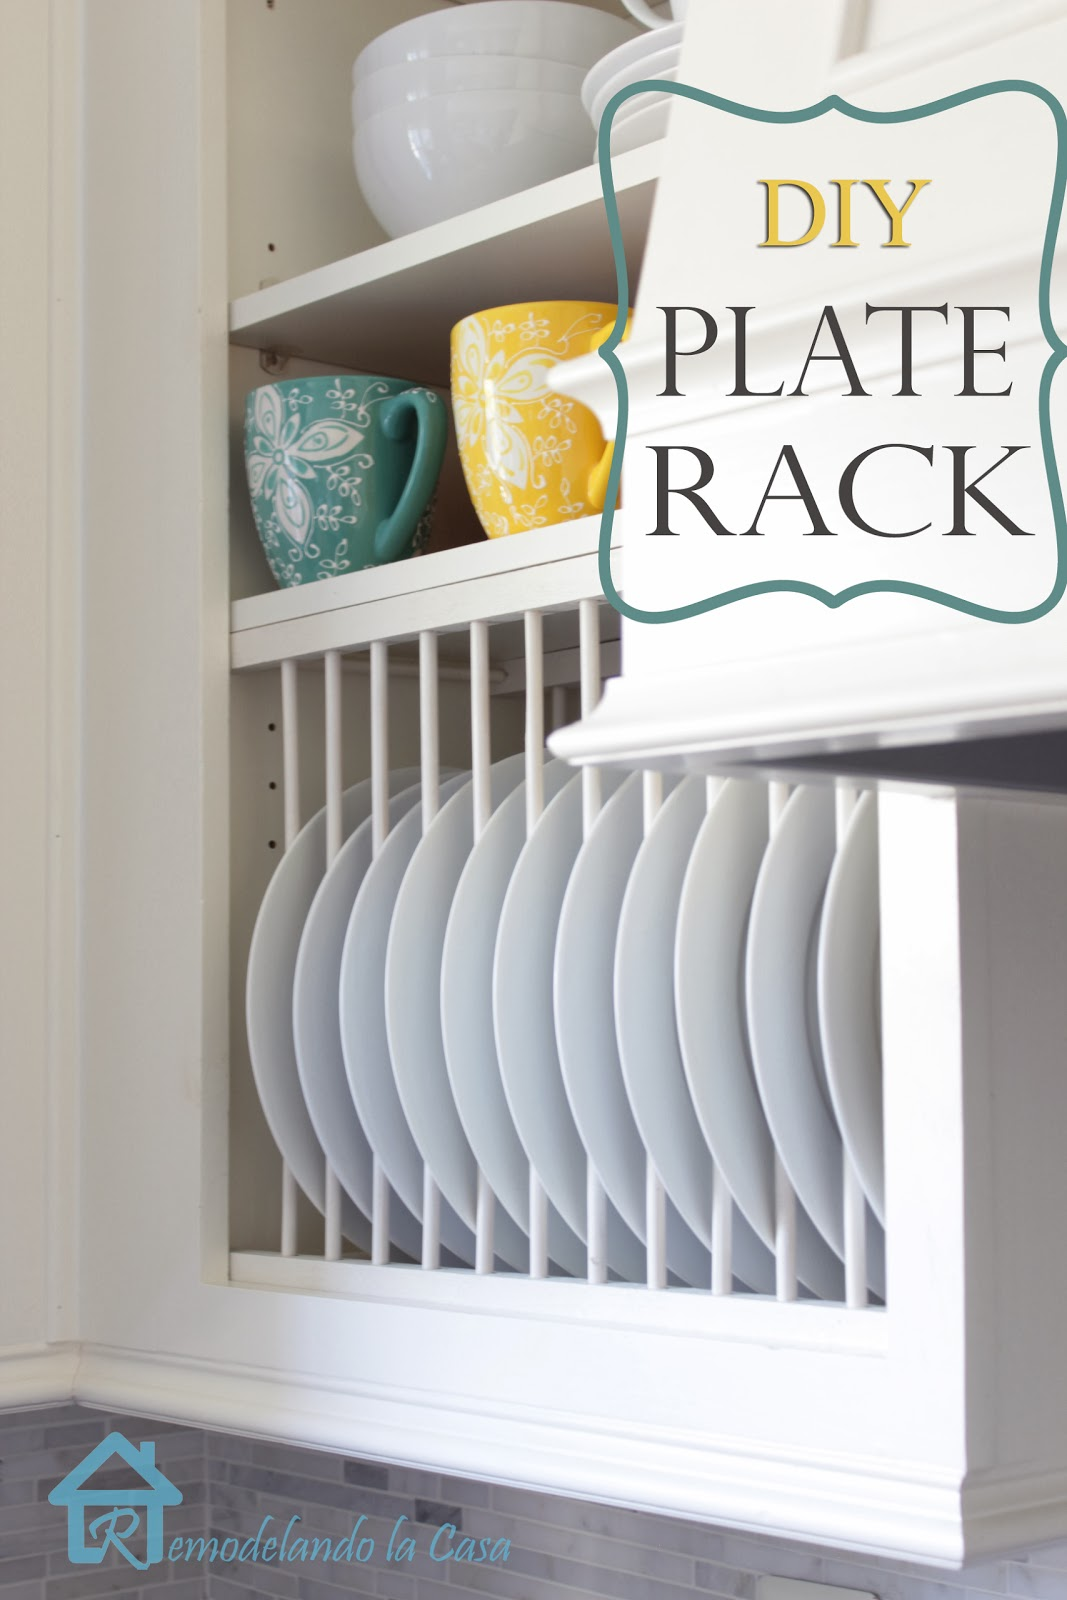 A Regular Cabinet Is Giving Plate Rack With Round And Square Dowels